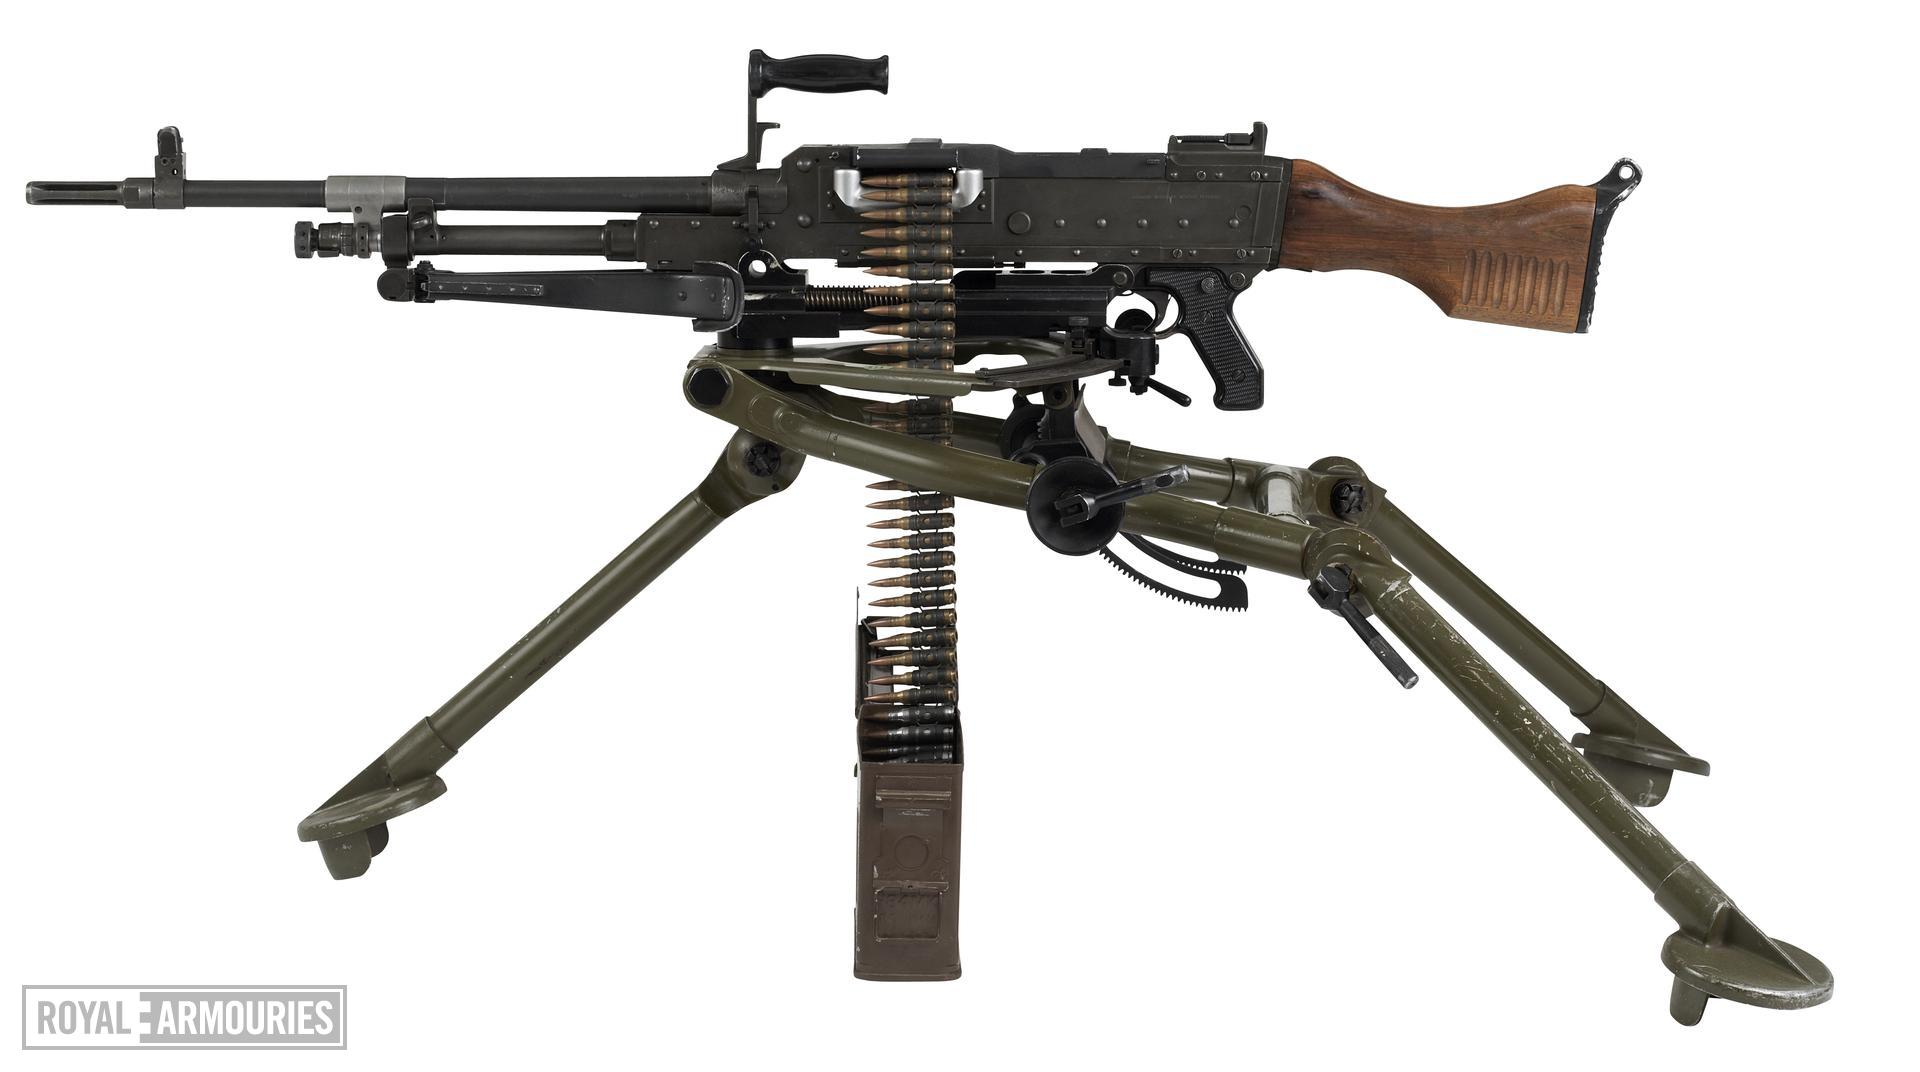 Centrefire automatic machine gun - FN MAG58 By Fabrique Nationale, Herstal, Liege